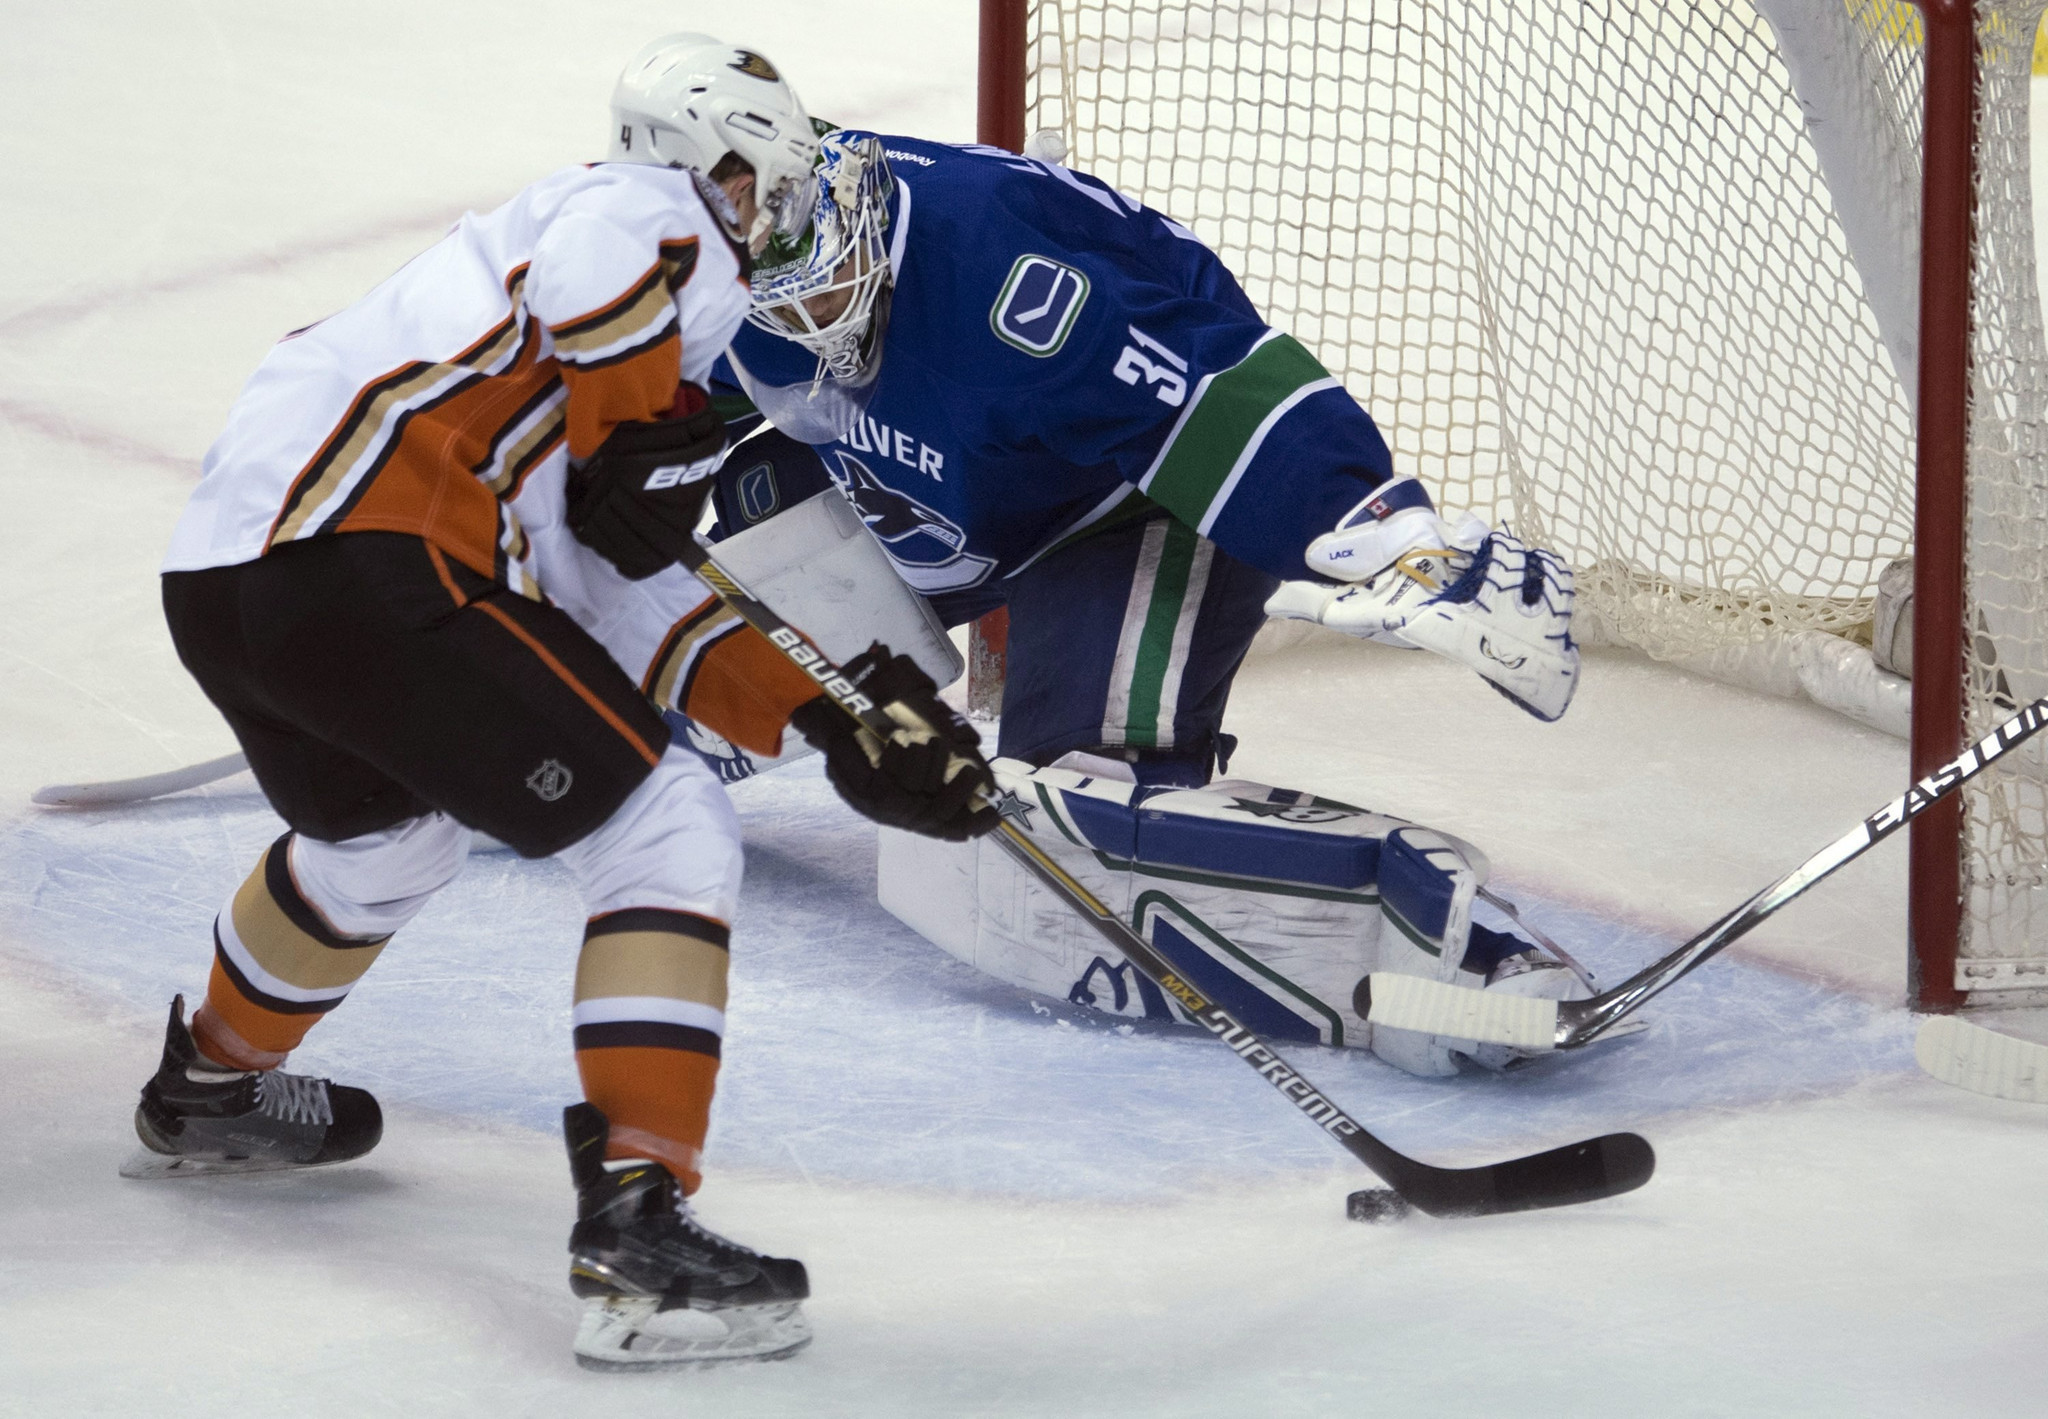 Ducks Are Finally Margin-called, Fall To Canucks In Rare One-goal Loss